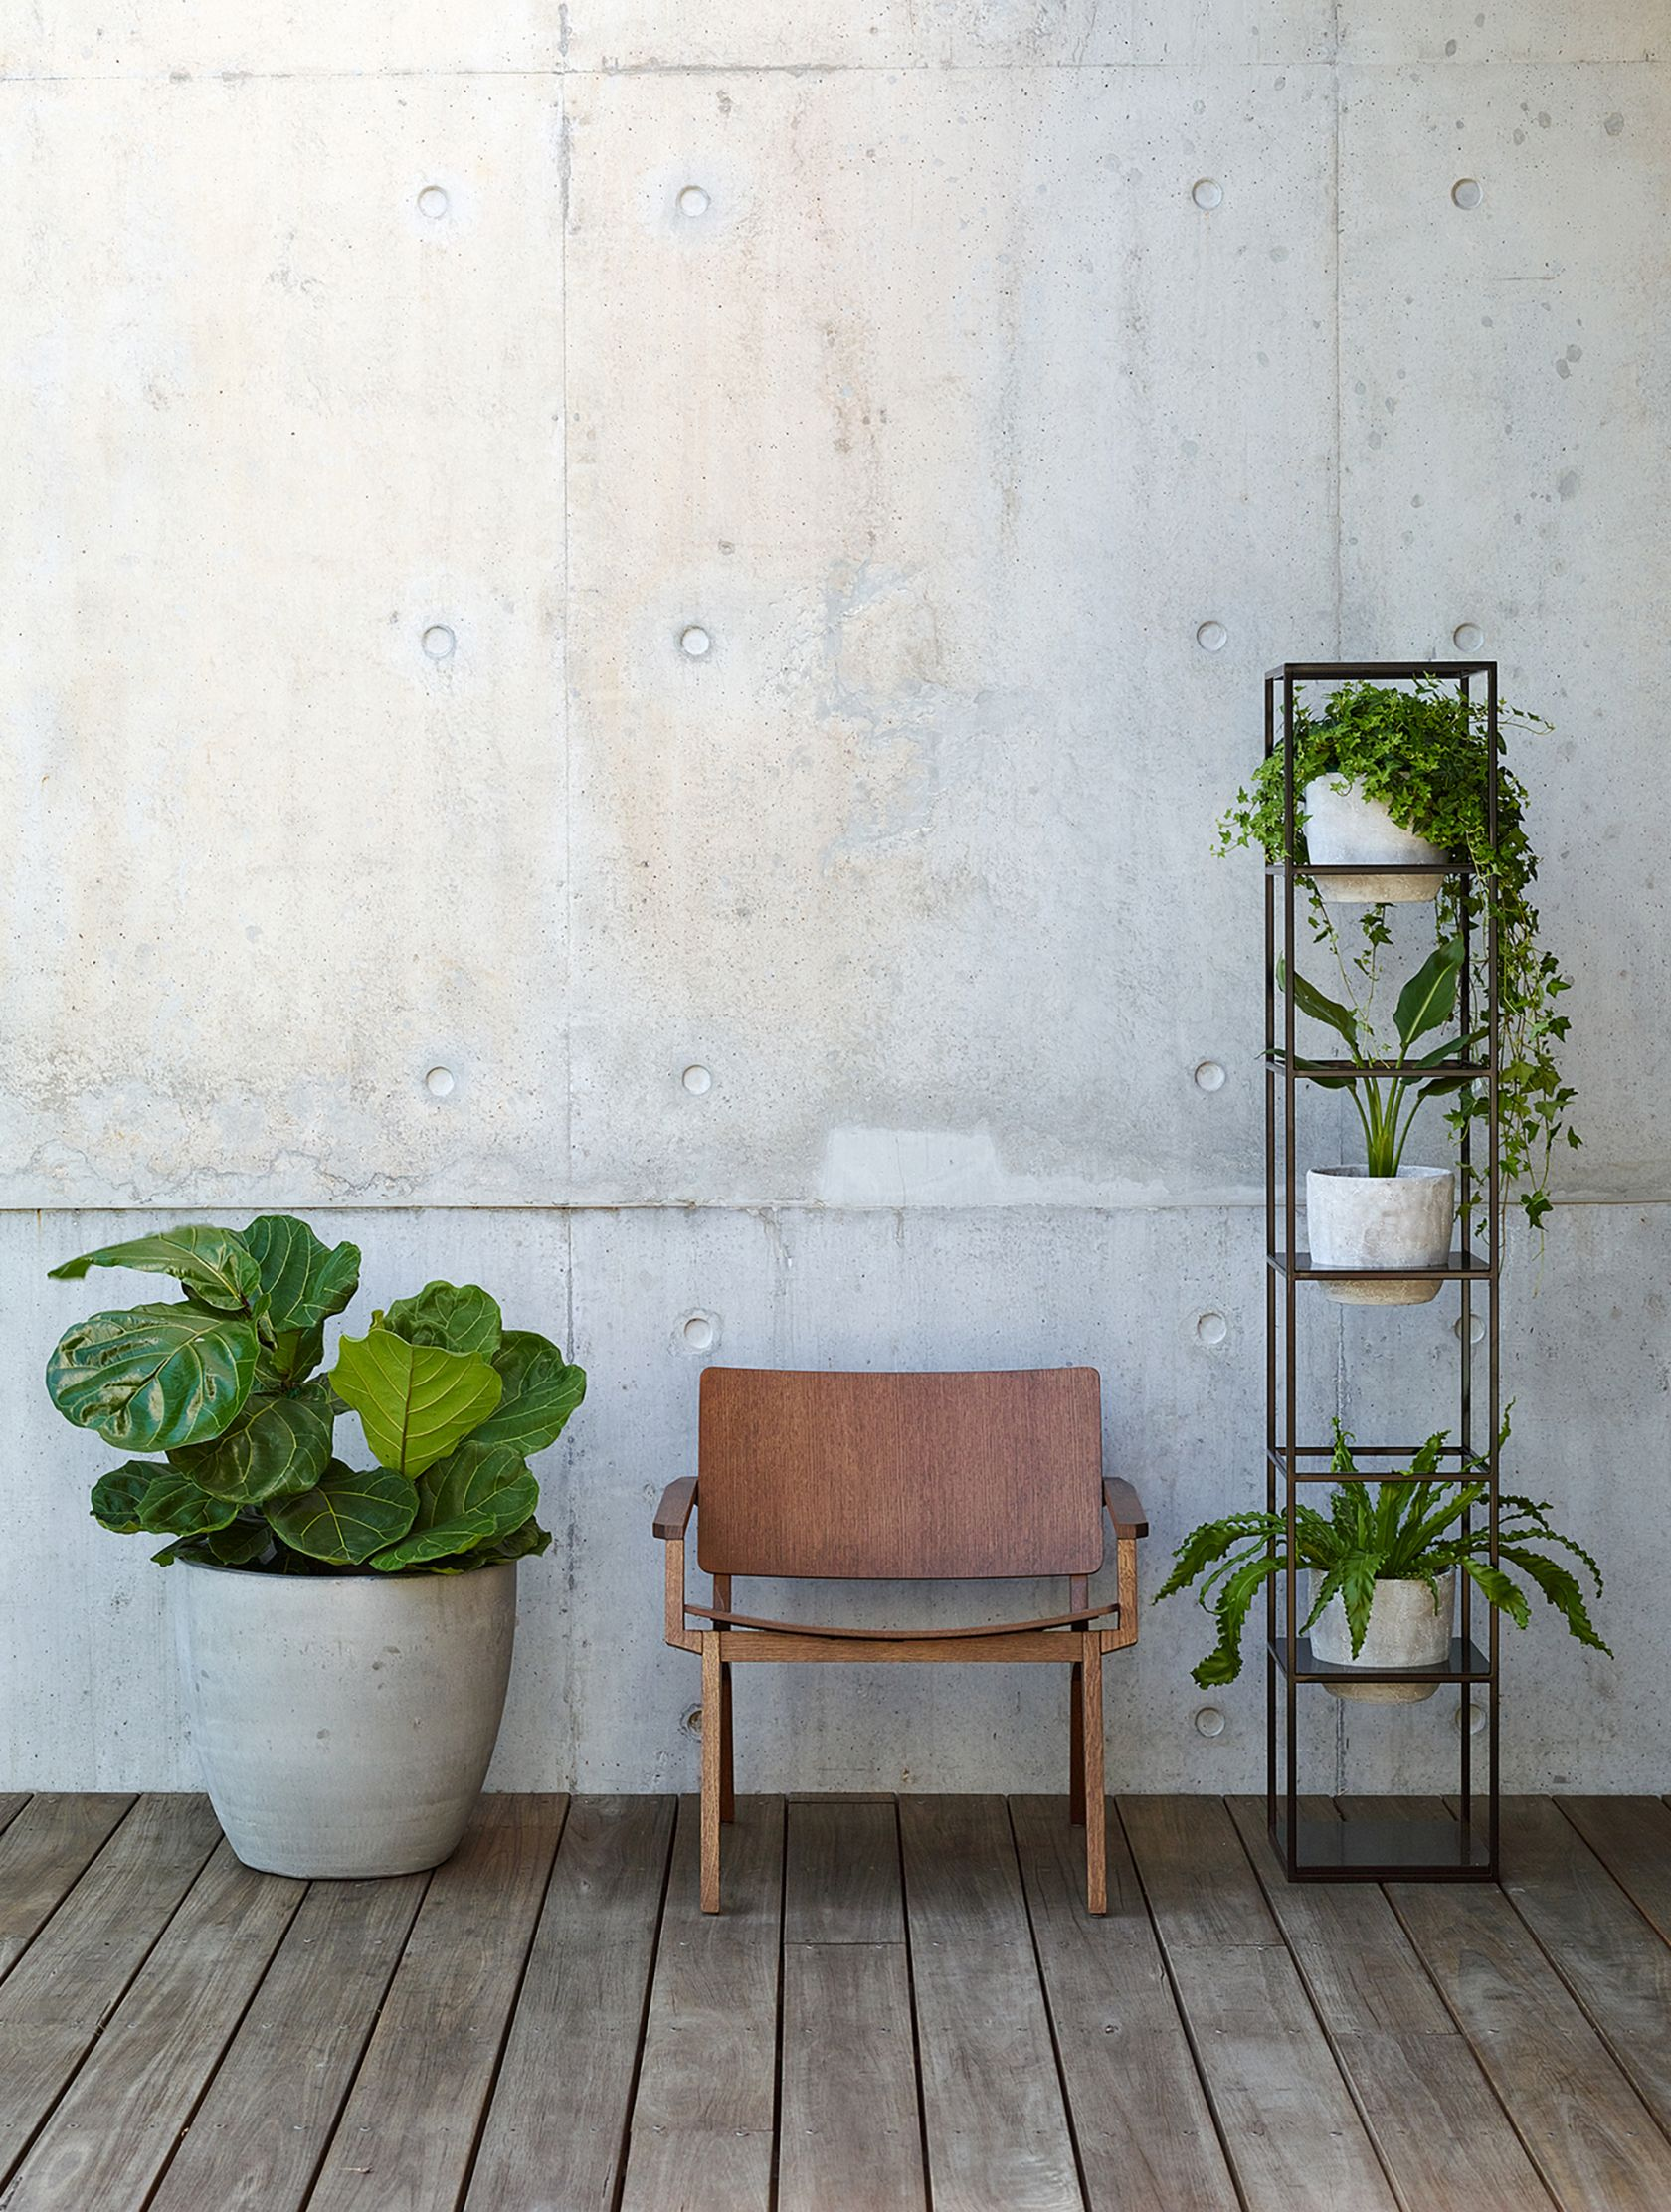 Maui Chair and Vertical Garden